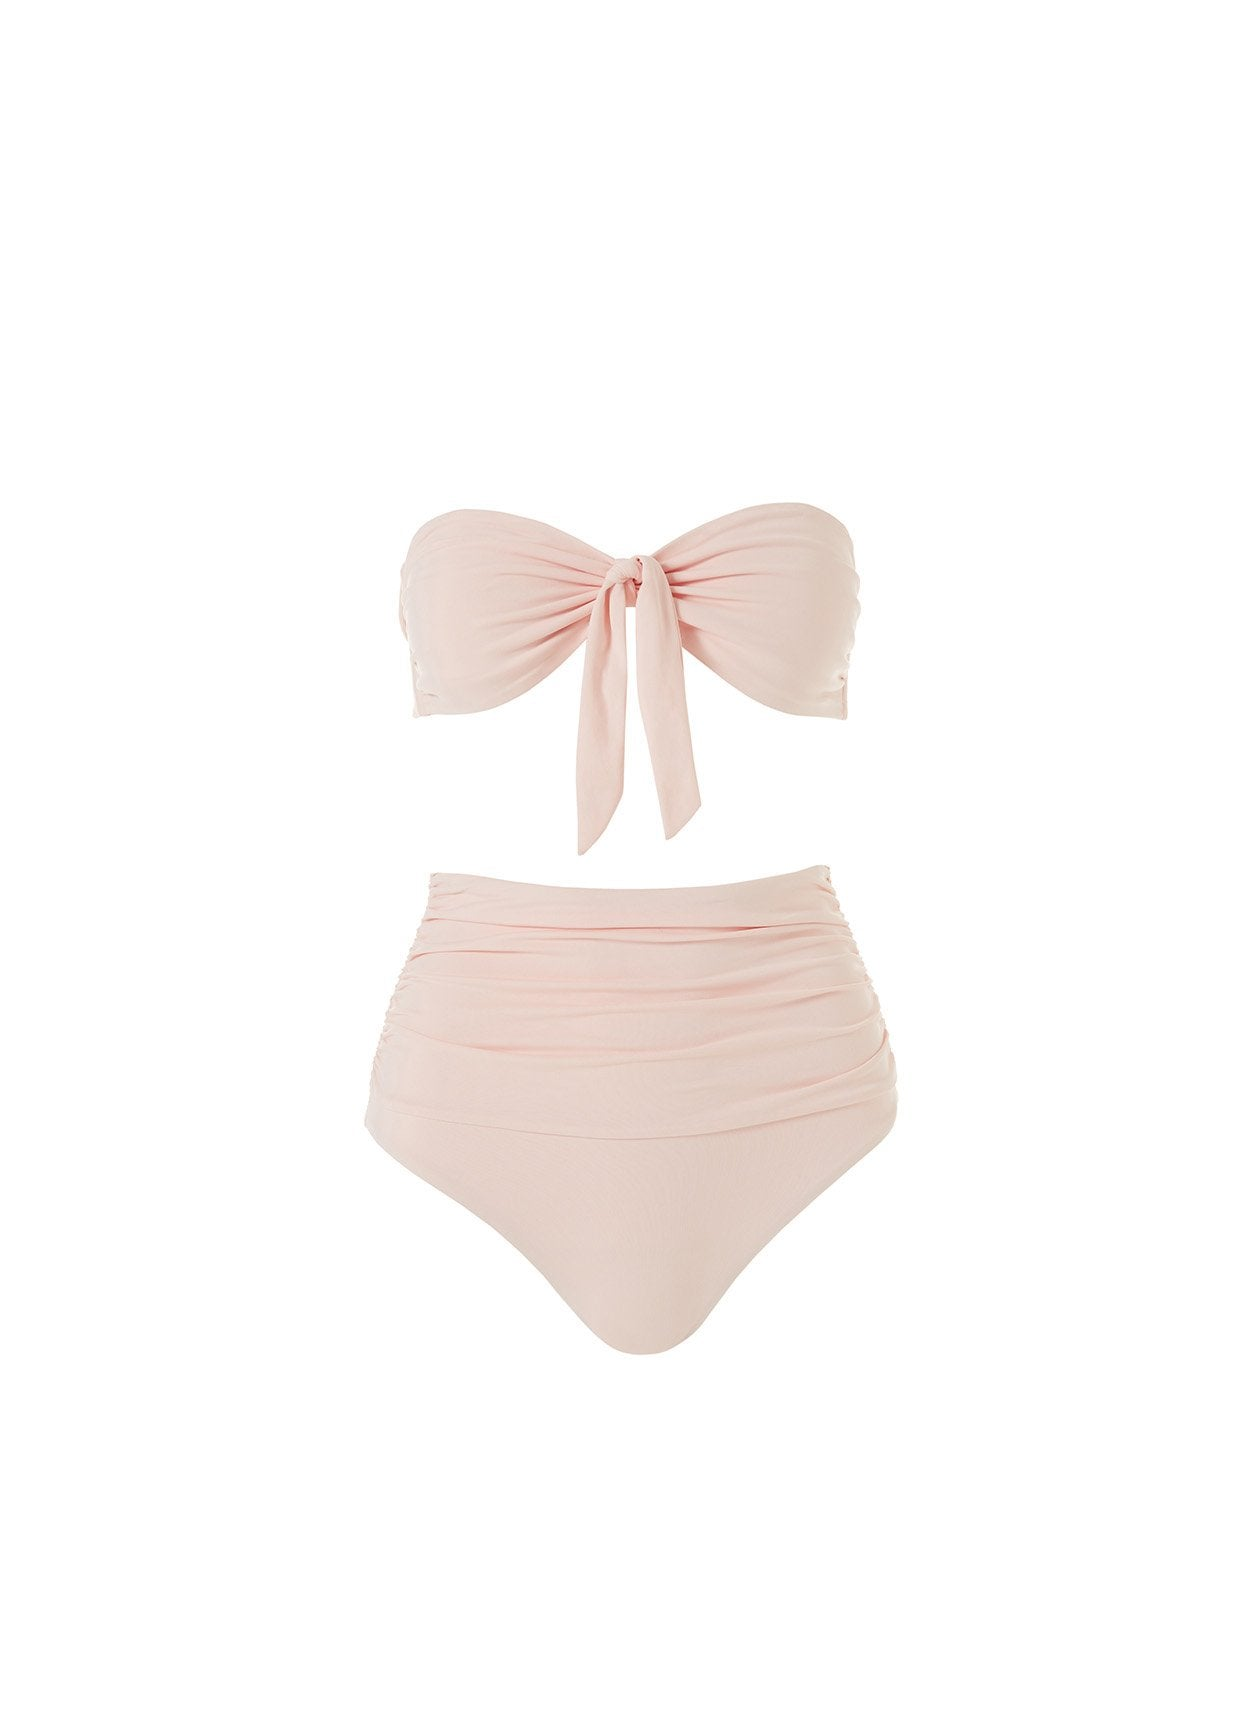 Caribe Blush High Waisted Bandeau Bikini 2020